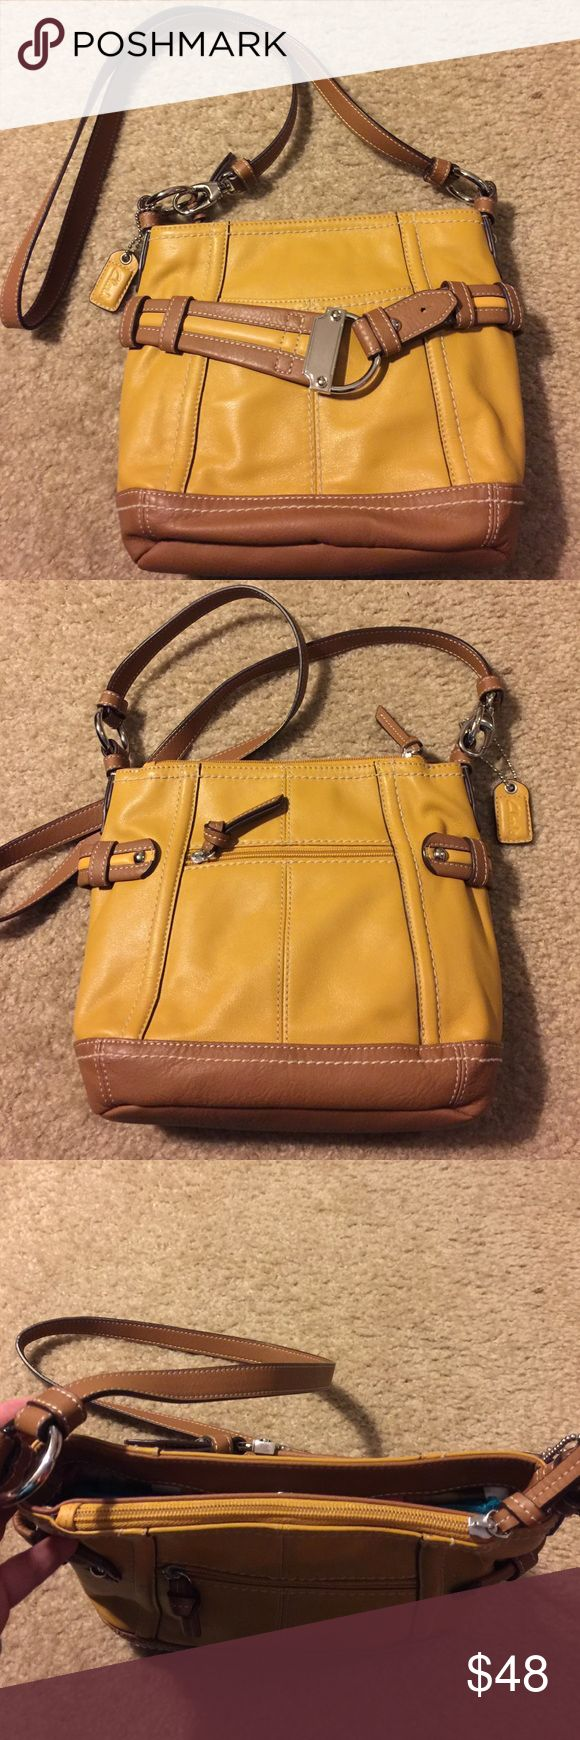 CLARKS LEATHER TWO-TONE CROSSBODY SHOULDER BAG CLARKS GENUINE LEATHER CROSSBODY CONVERTIBLE SHOULDER BAG - COLOR: Two-tone Mustard and Brown - contrast stitching accent, silvertone hardware, exterior zip pocket, exterior open pocket, one top zip compartment, one top snap compartment, one interior side zip pocket, one interior side open pockets, key fob Clarks Bags Crossbody Bags